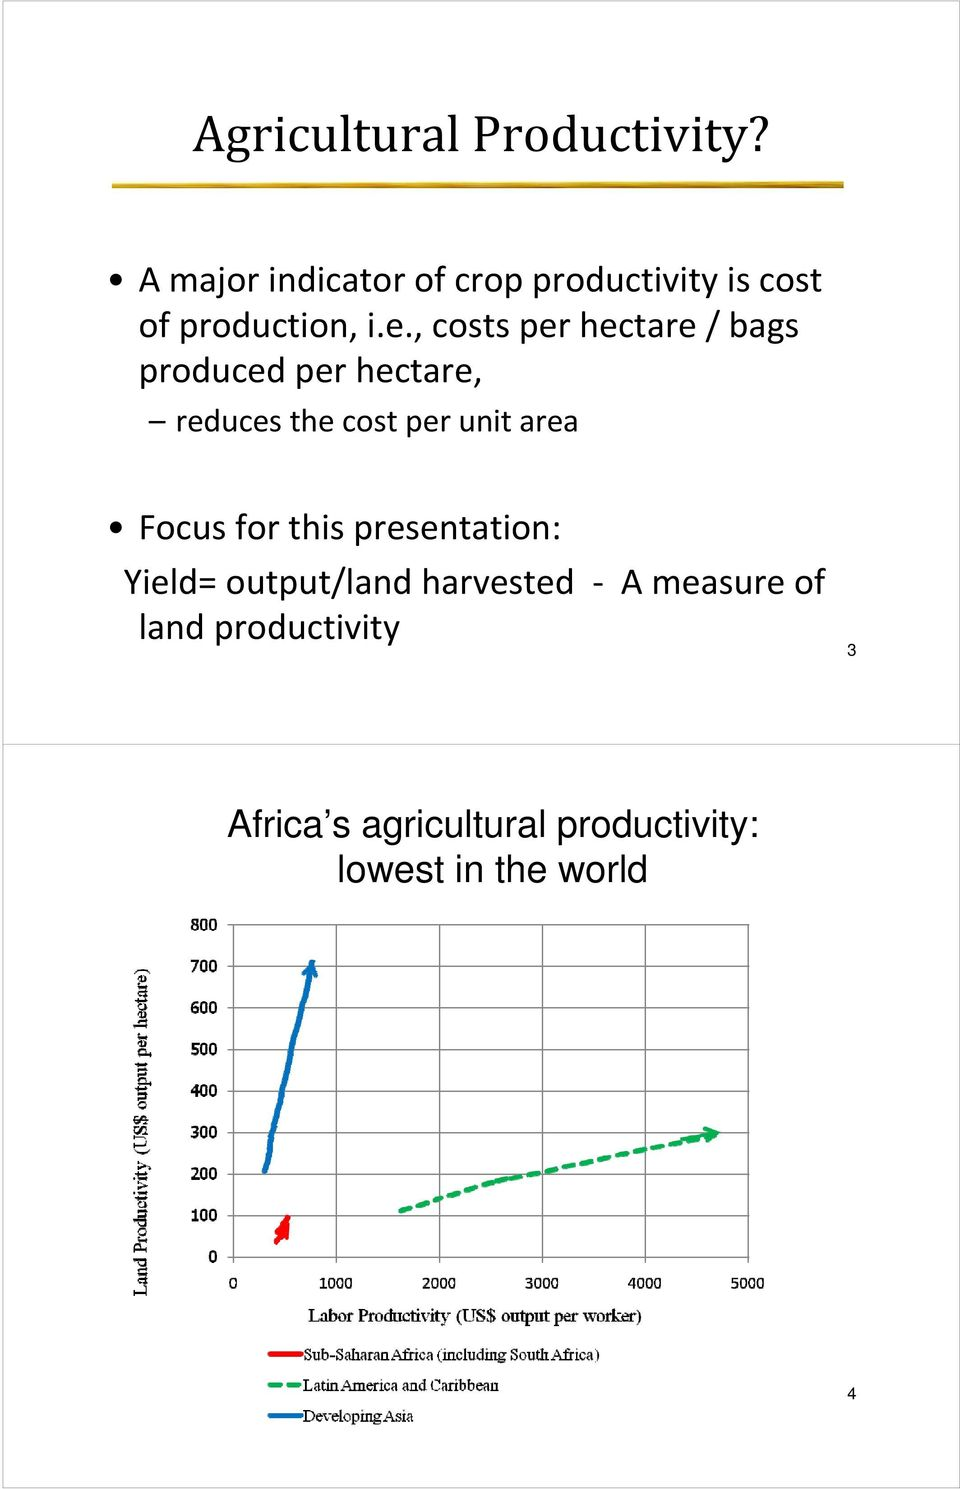 , costs per hectare / bags produced per hectare, reduces the cost per unit area